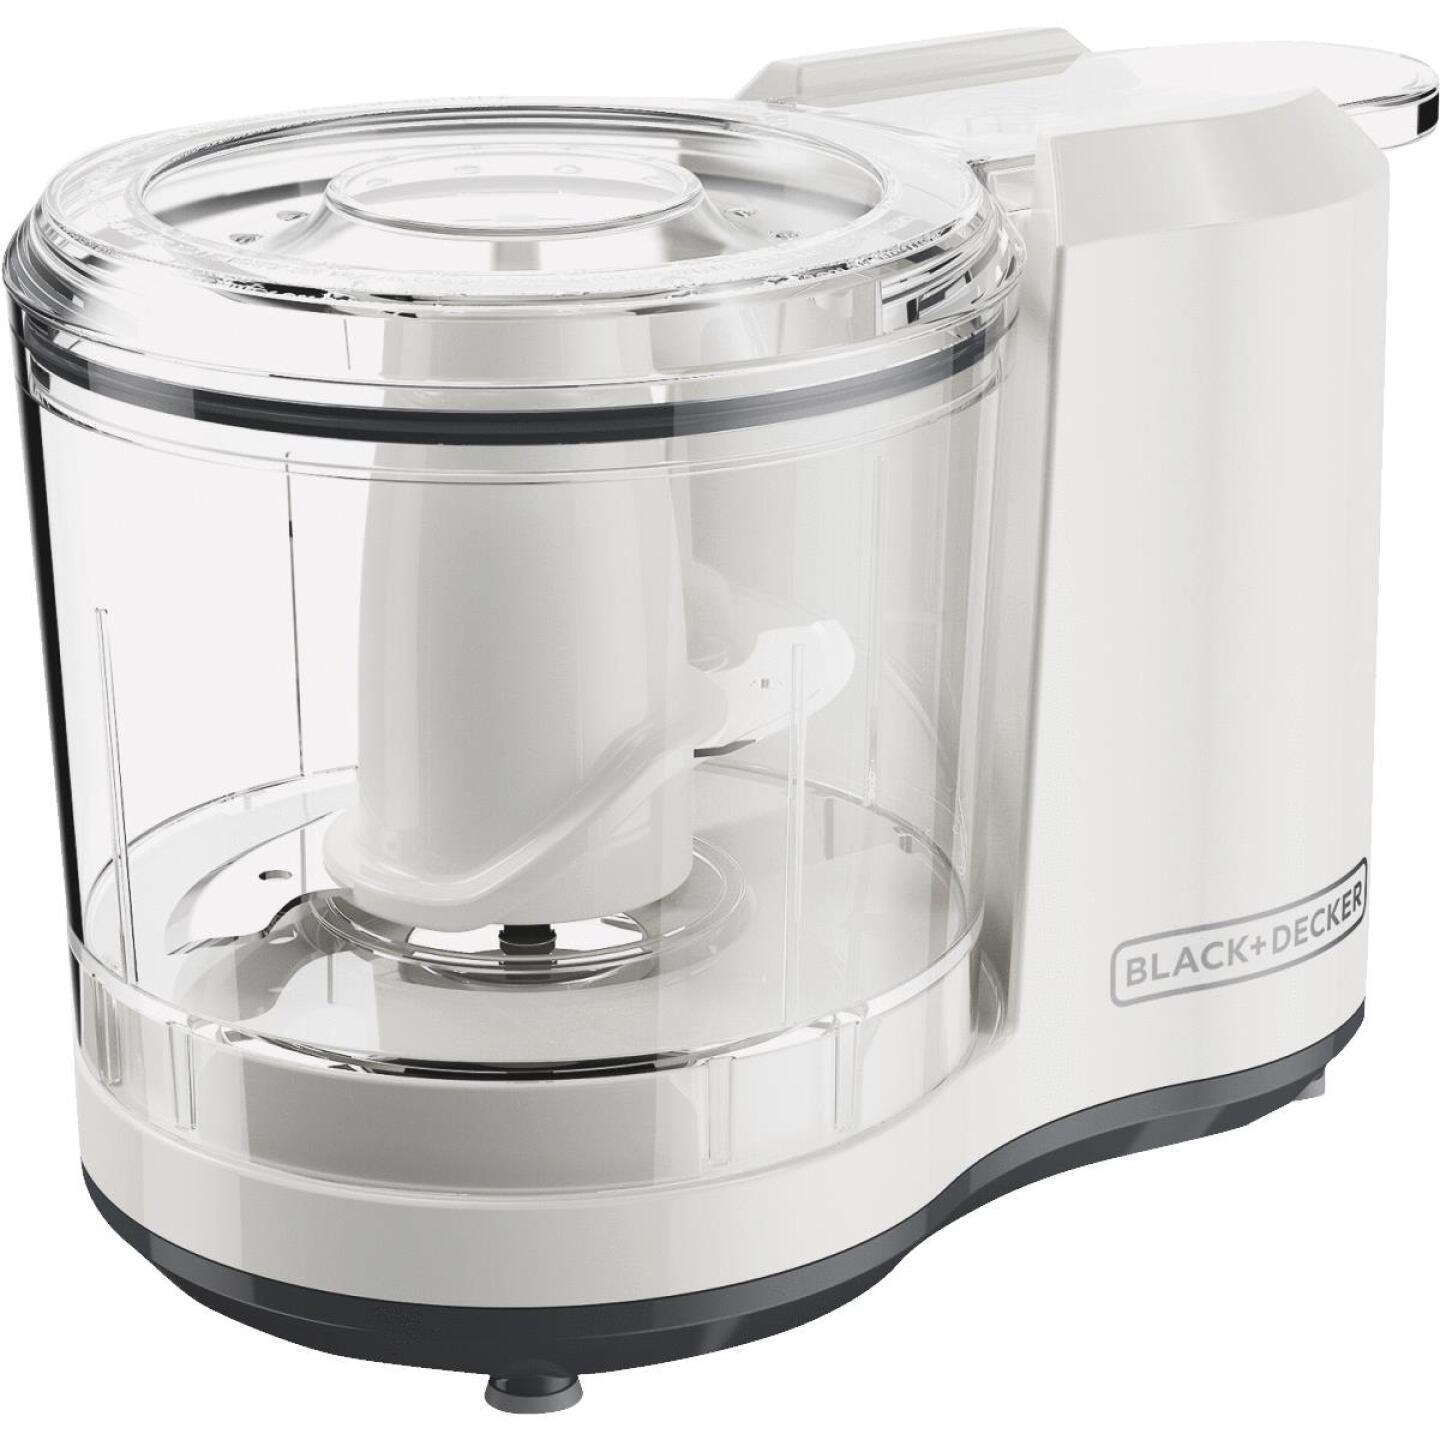 Black & Decker 1.5 Cup One-Touch Food Chopper Image 1